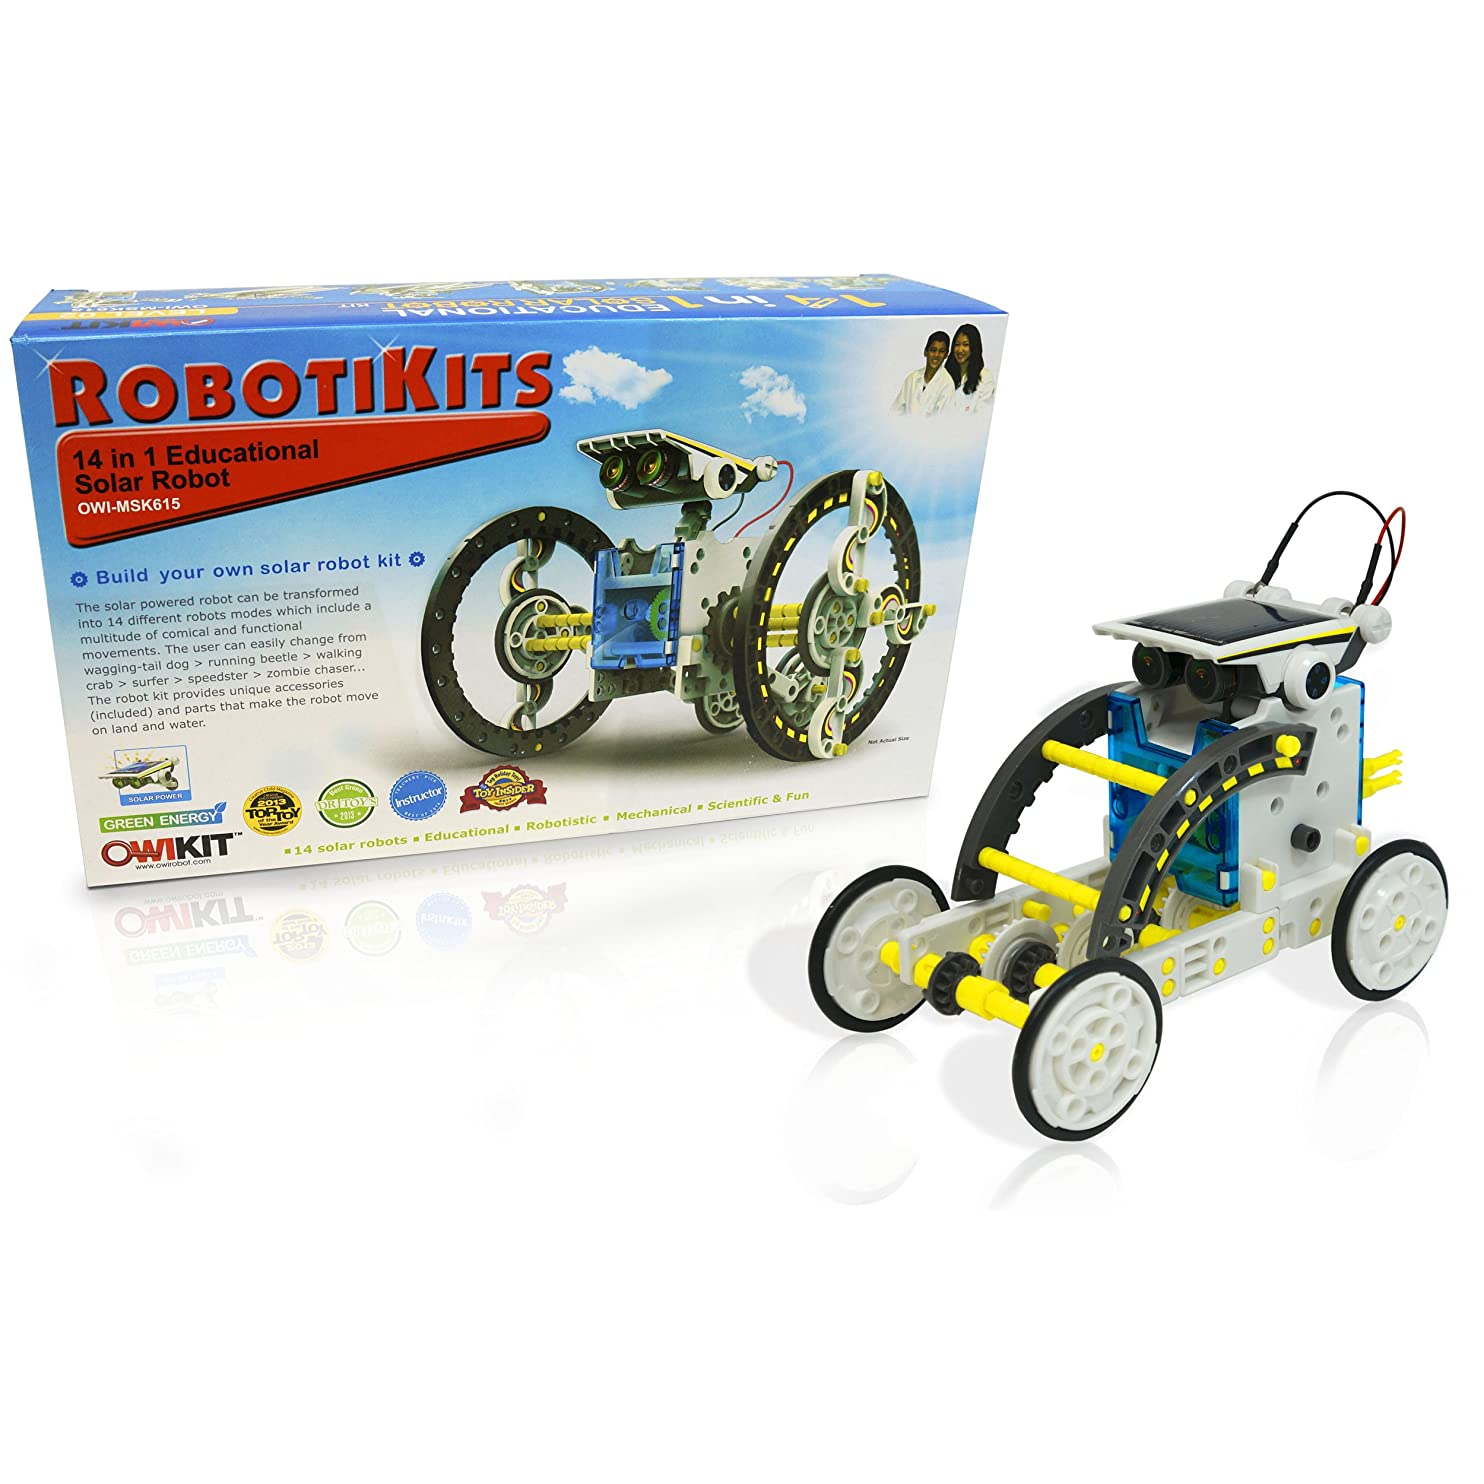 14-in-1 Educational Solar Robot | Build-Your-Own Robot Kit | Powered by the Sun qhqztmogcwr72